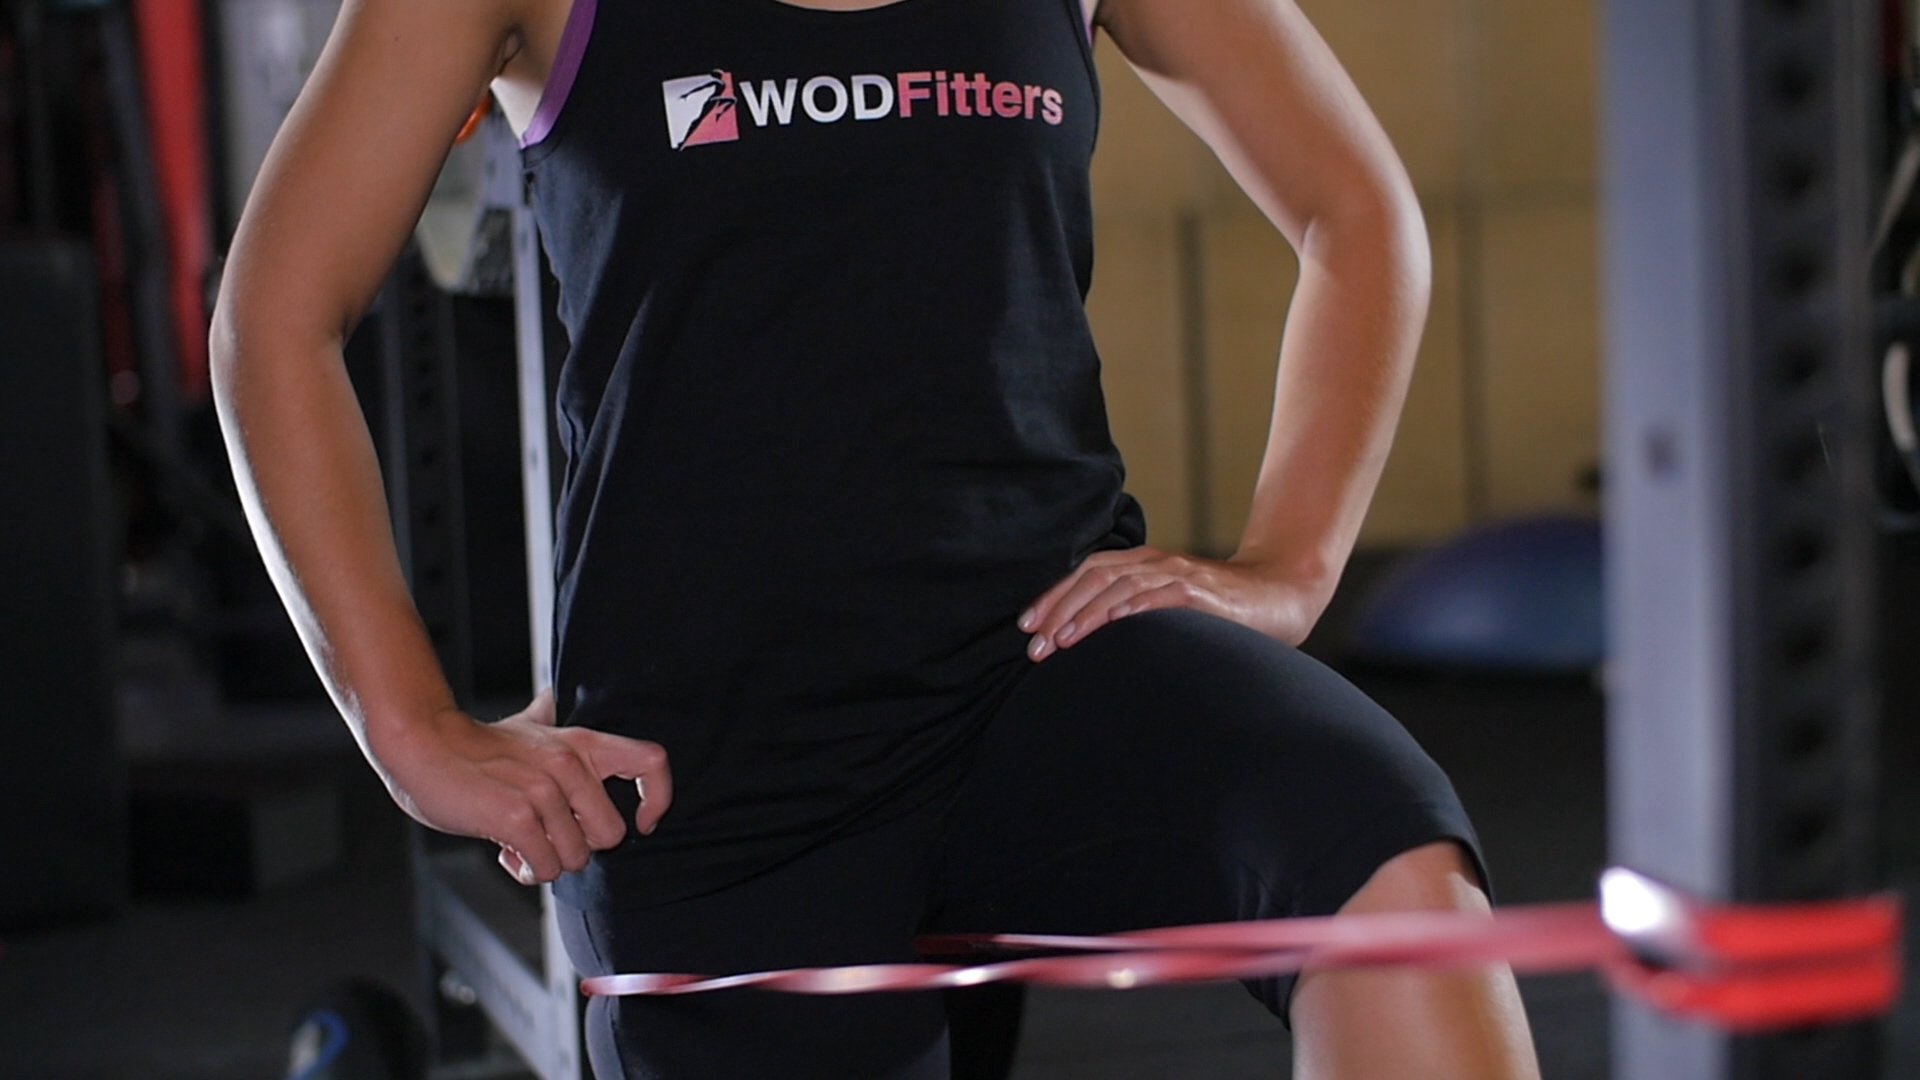 WODFitters Stretch Resistance Pull Up Assist Band with eGuide, #1 Red- 10 to 35 Pounds (1/2 ''4.5mm) by WODFitters (Image #4)